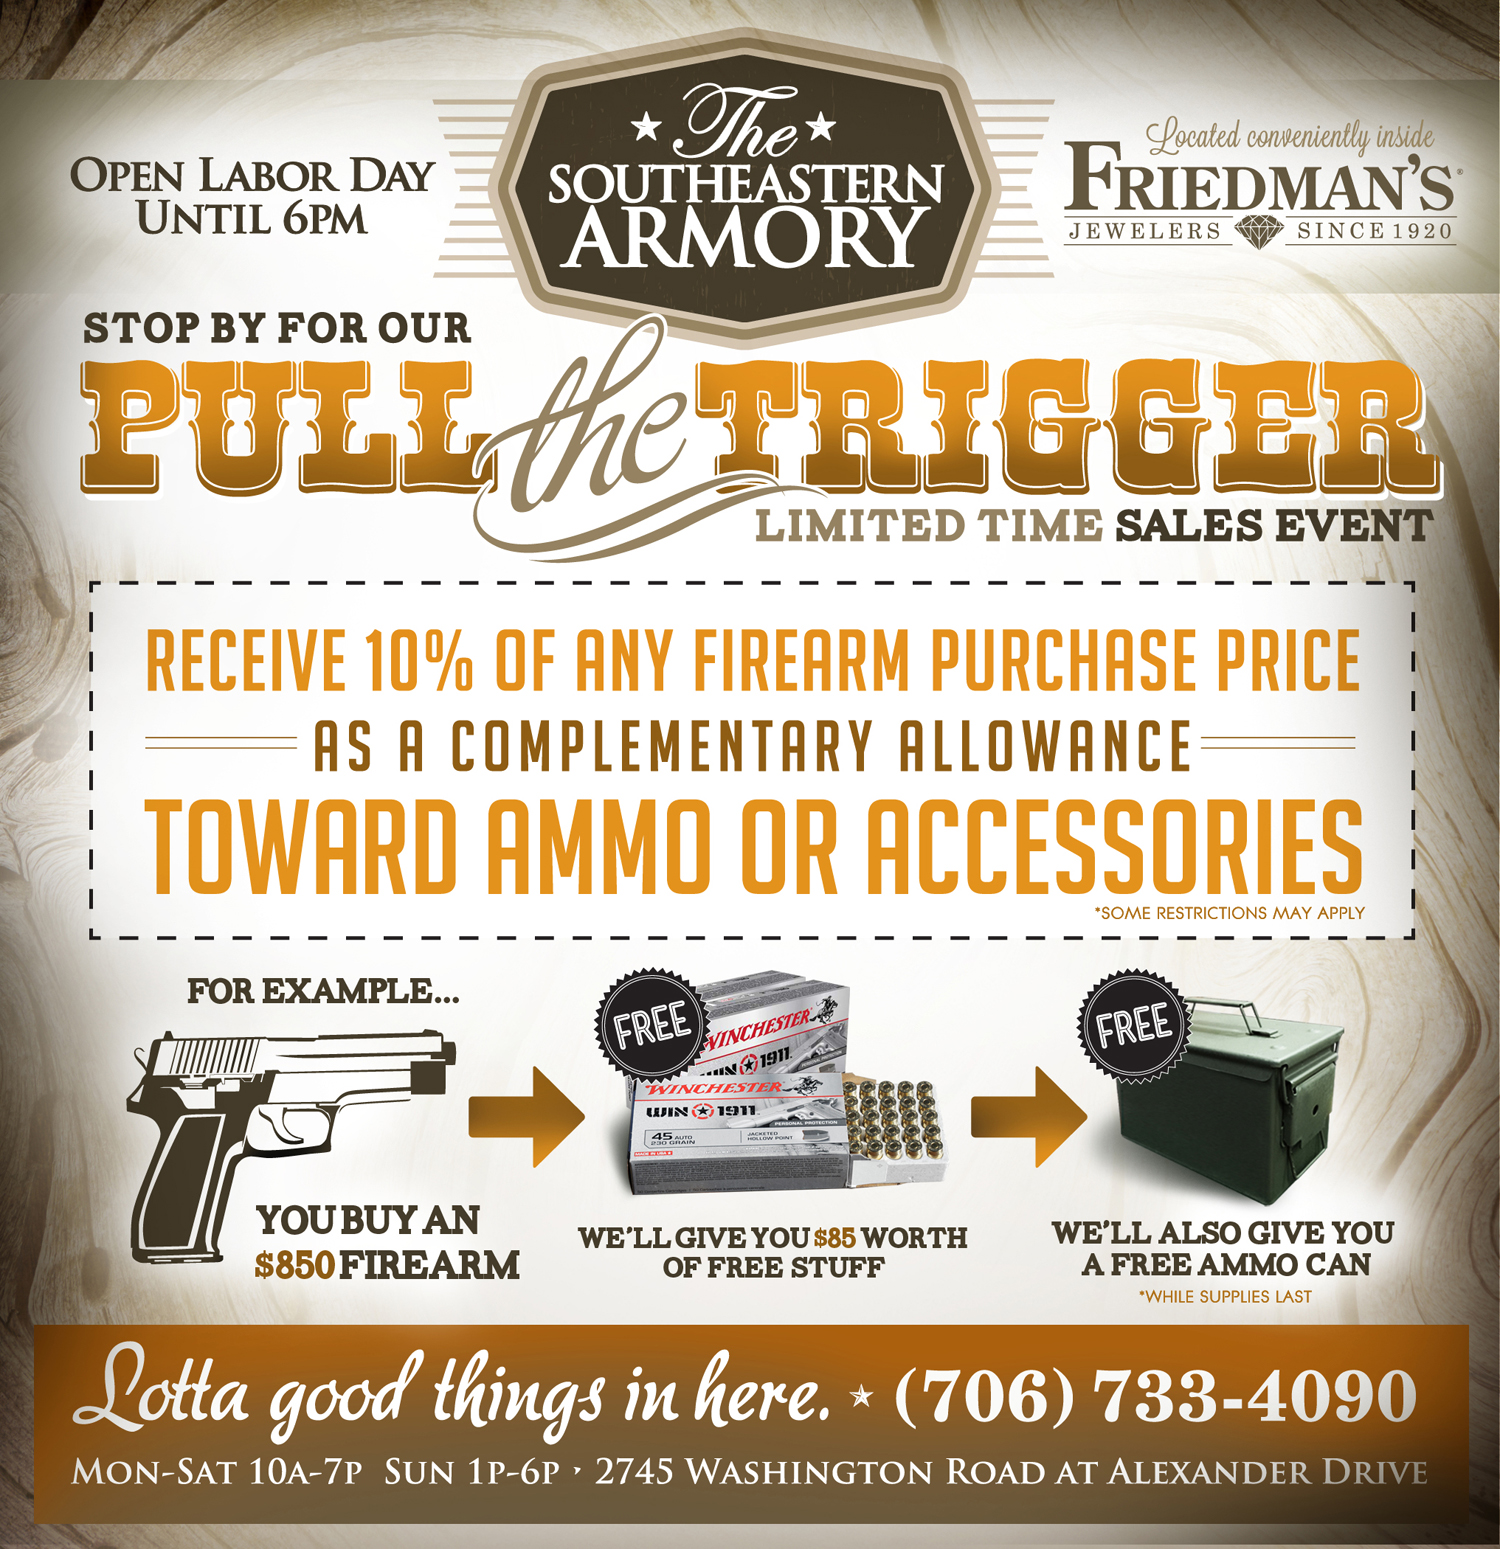 Southeastern Armory - Pull The Trigger before Labor day half 8-30 and 8-31